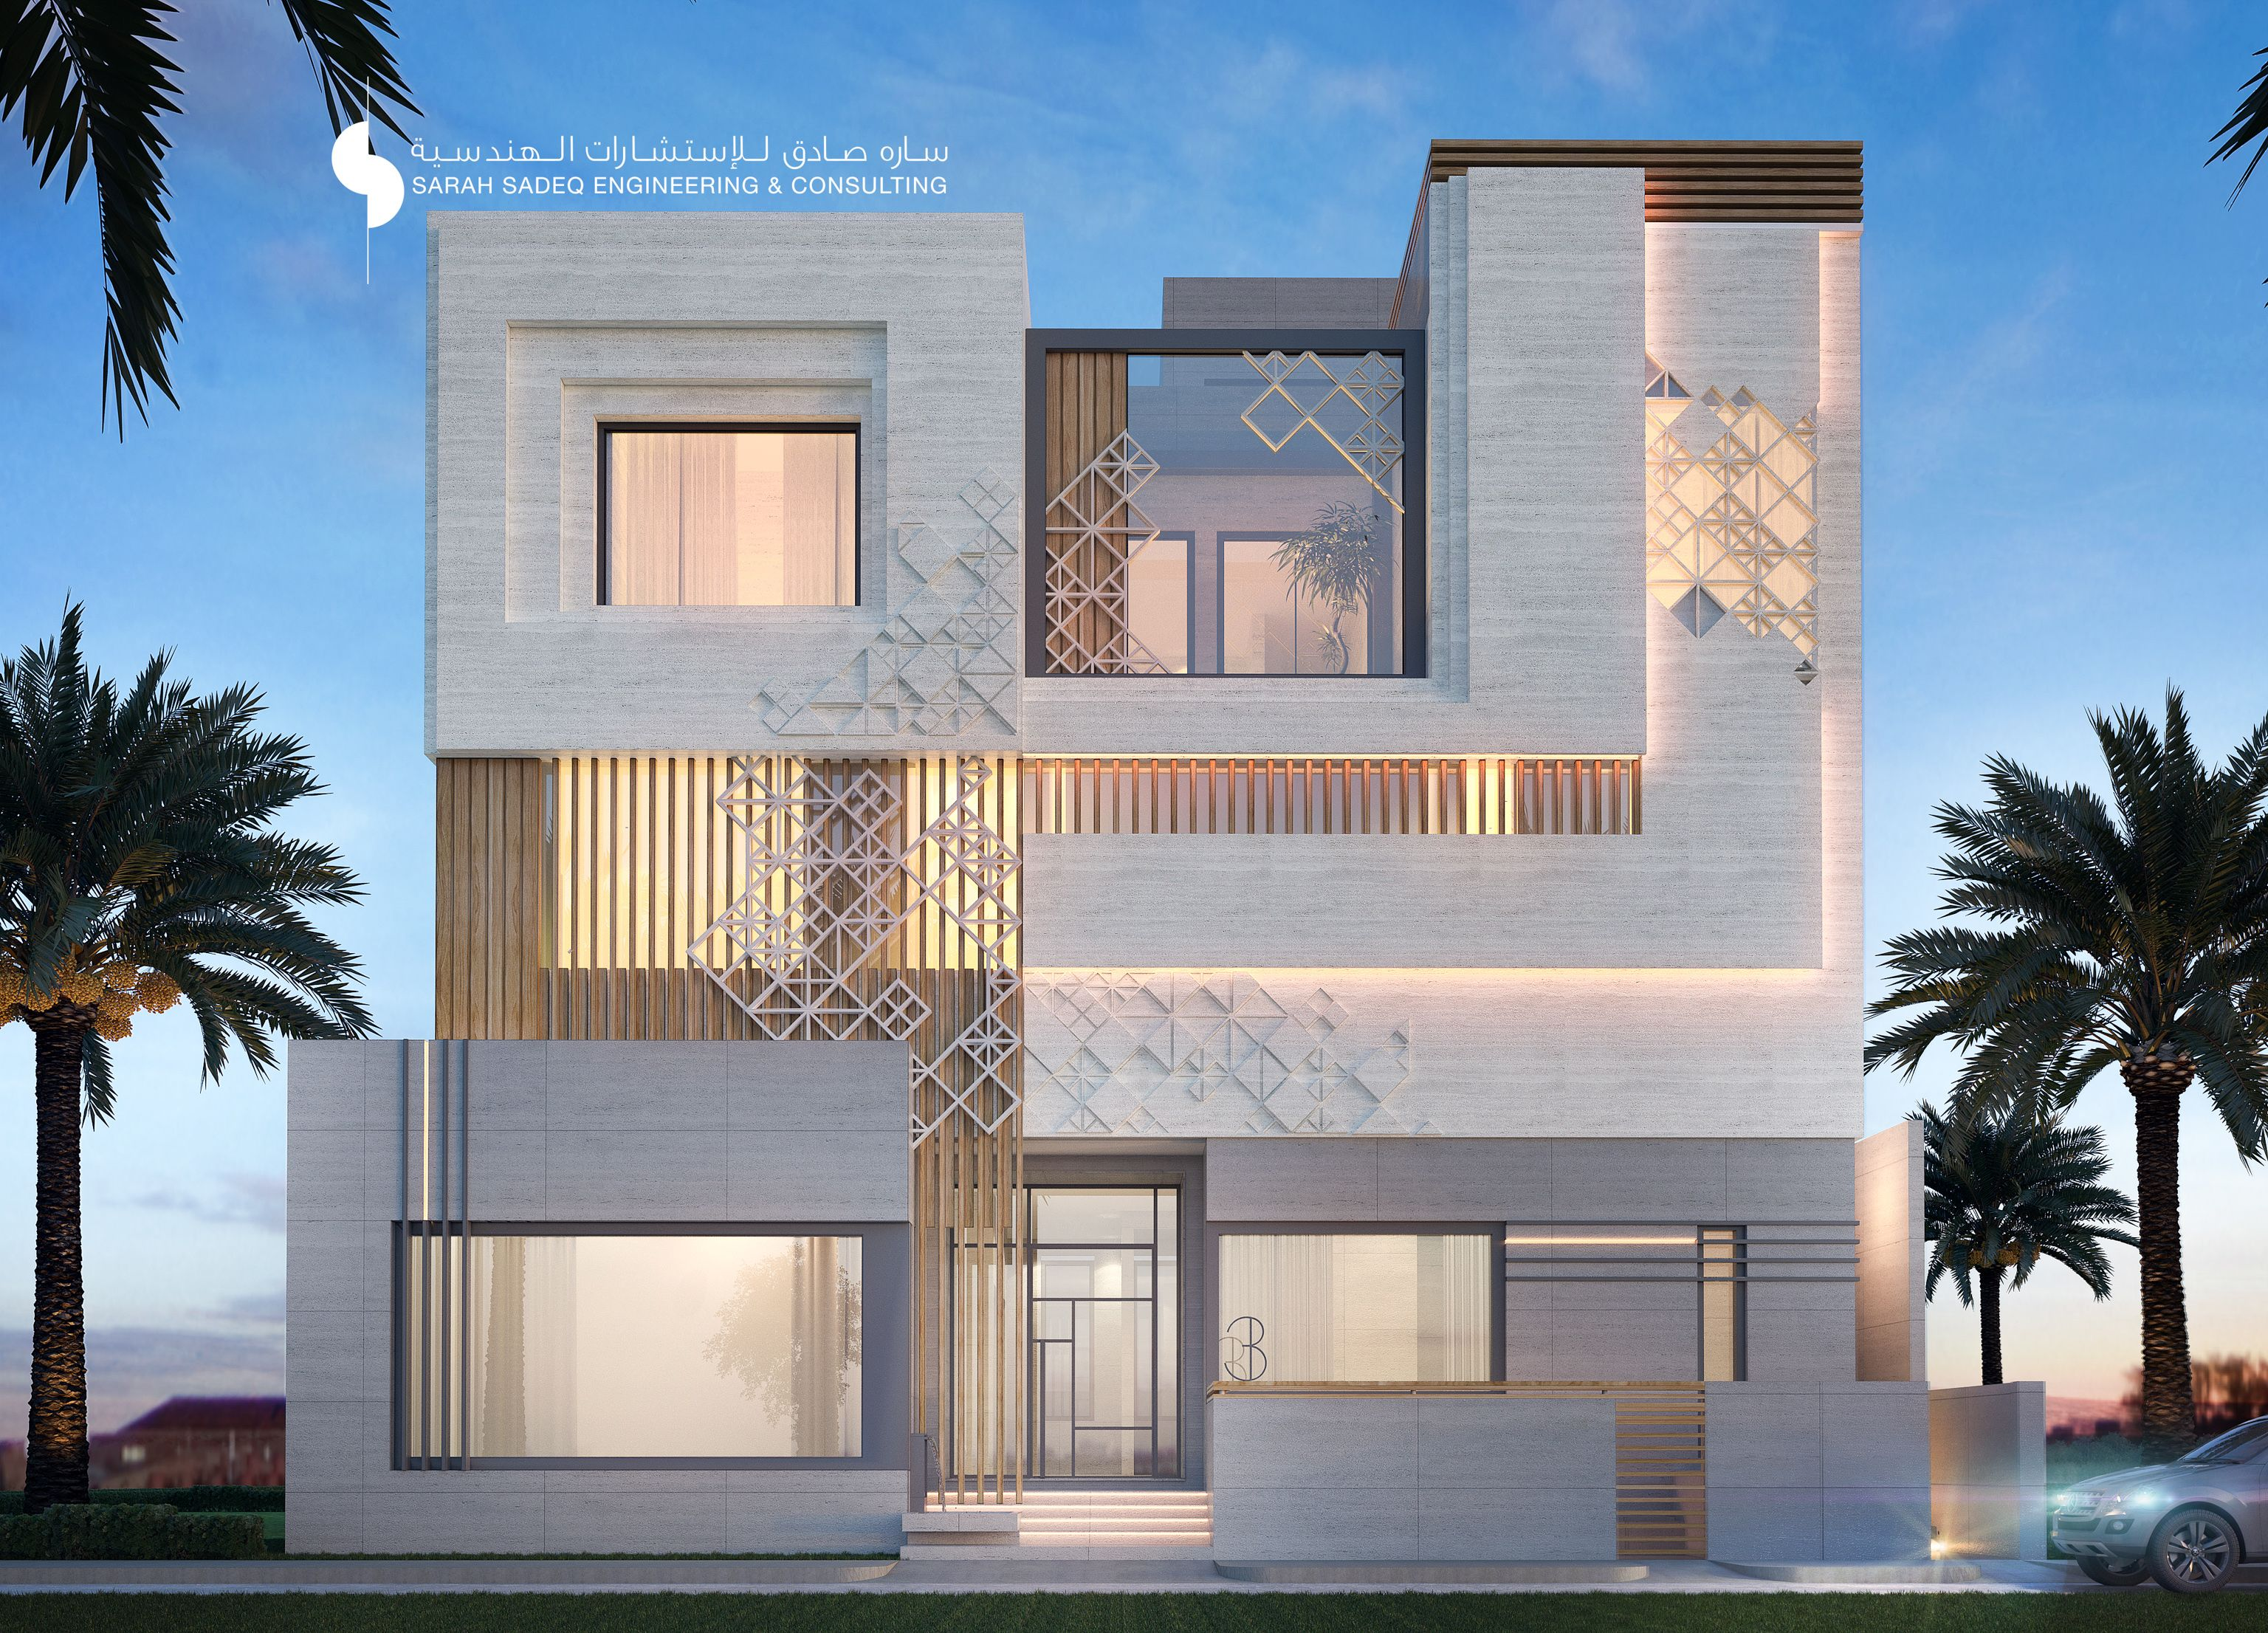 Private villa kuwait 400 m by sarah sadeq architects for Villa architecture design plans